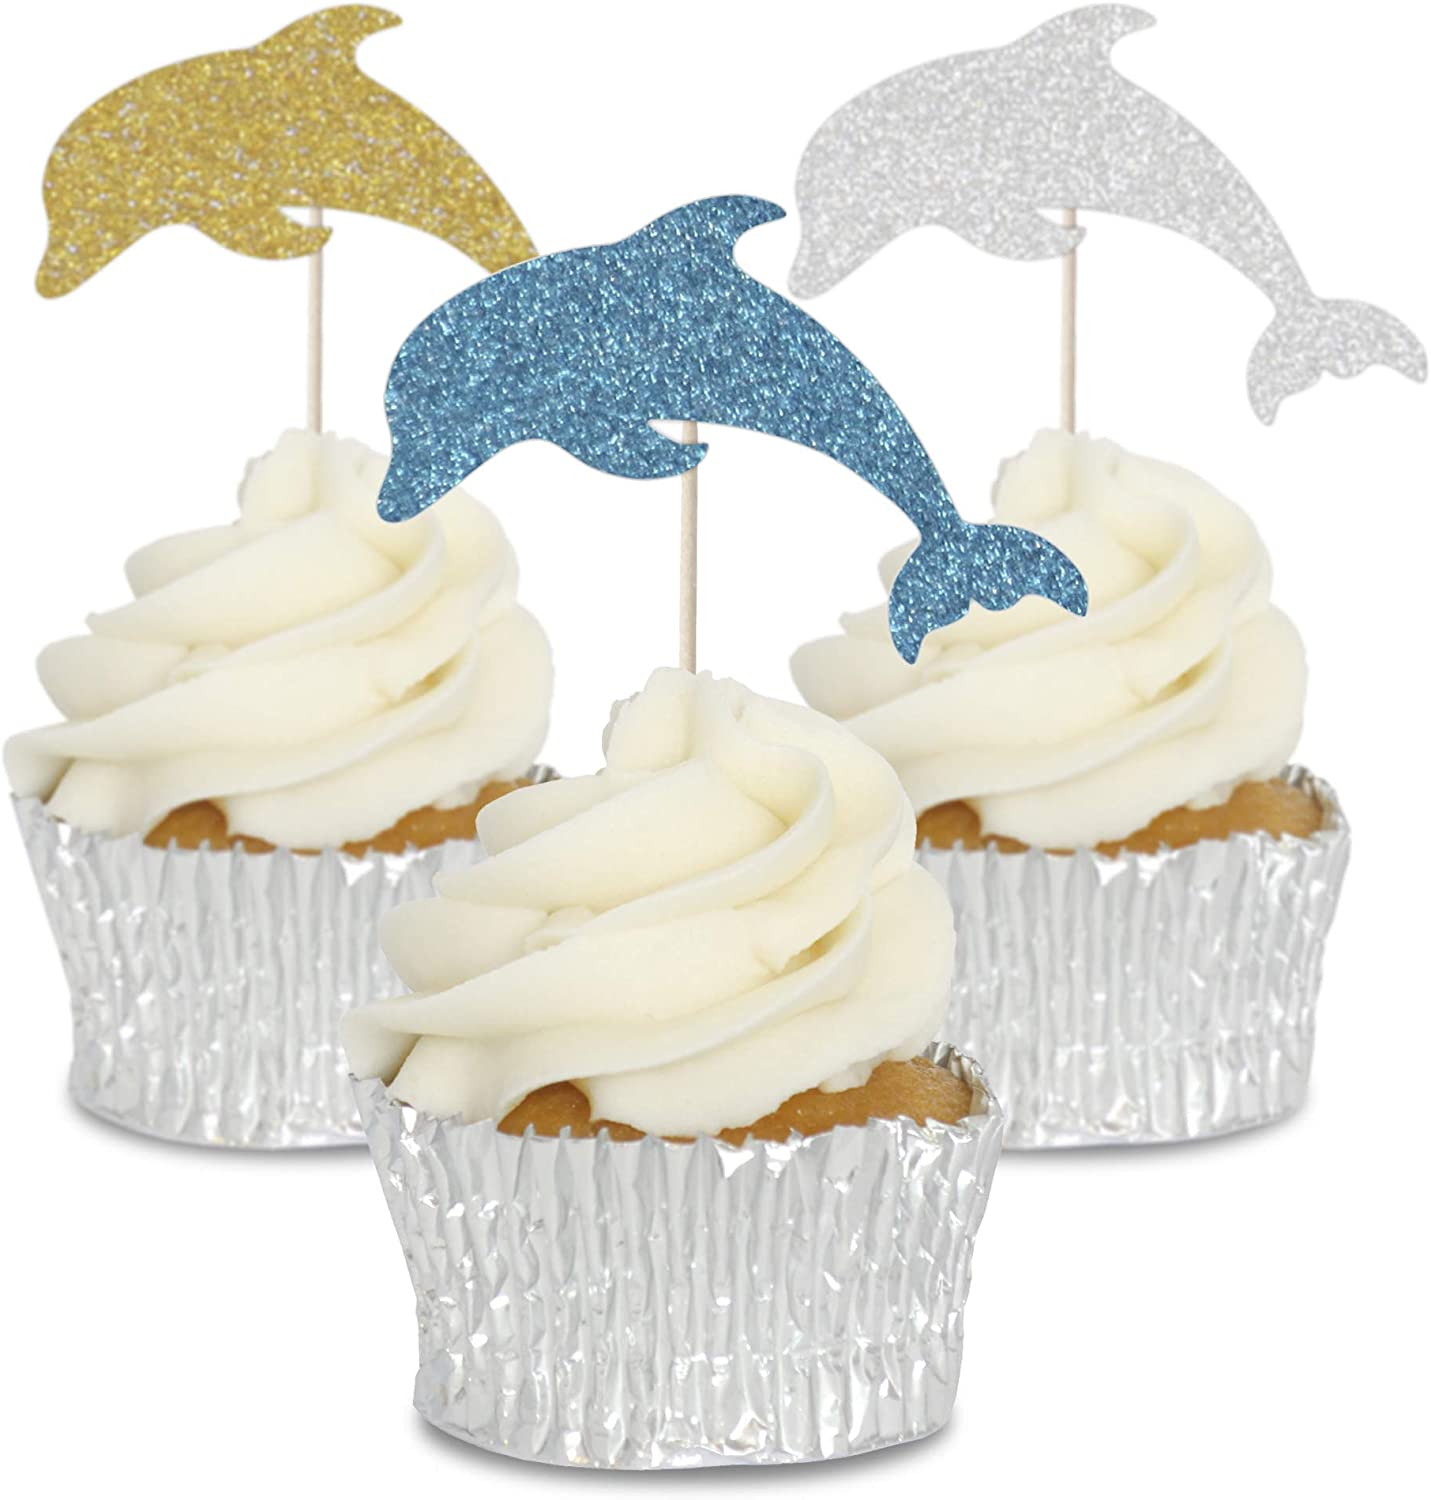 12 Beach Theme Cupcake Decoration Rice Paper Cake Toppers Precut 40mm Summer